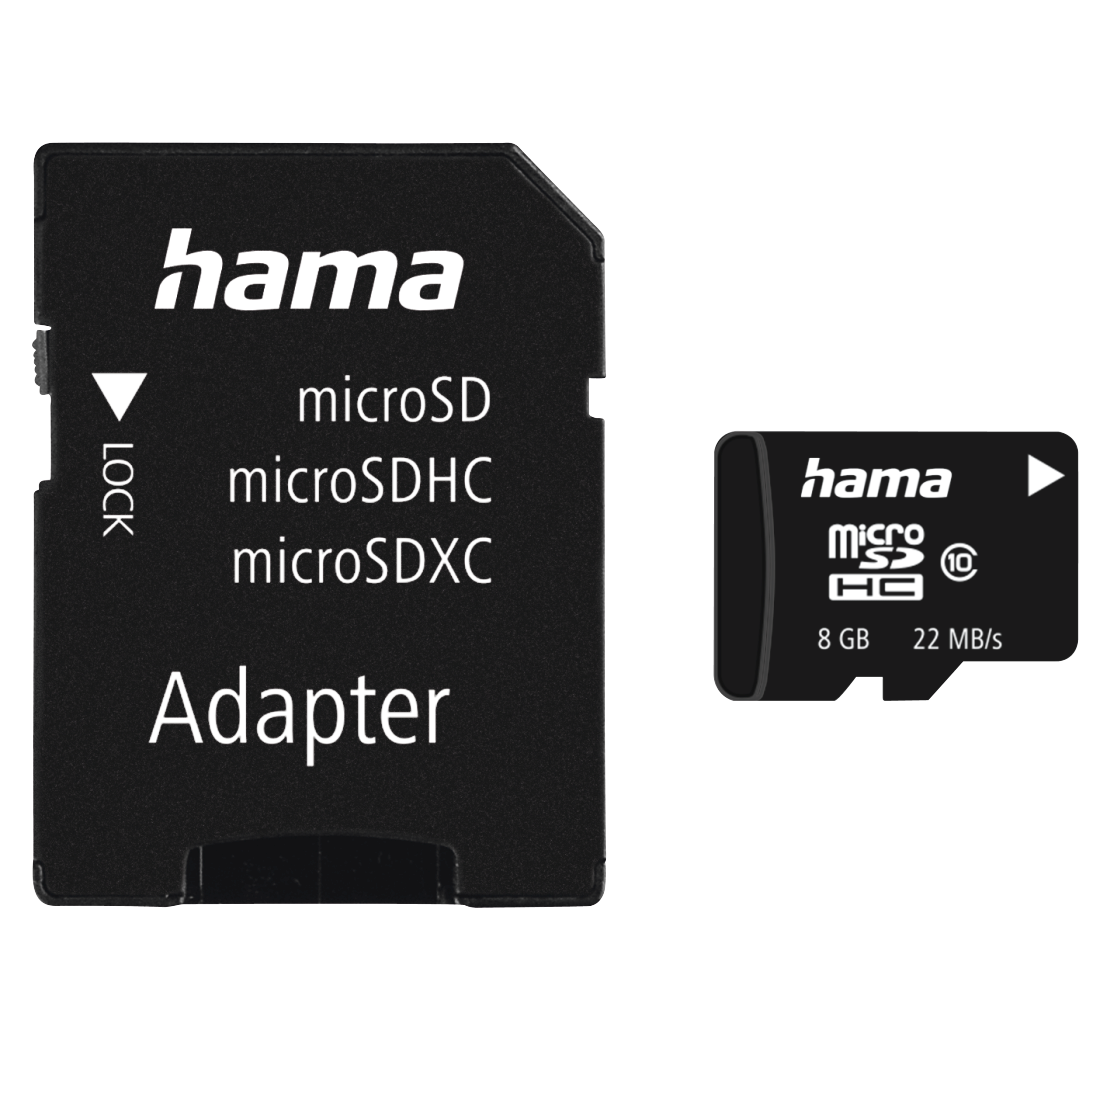 abx High-Res Image - Hama, microSDHC 8GB Class 10 22MB/s + Adapter / Mobile